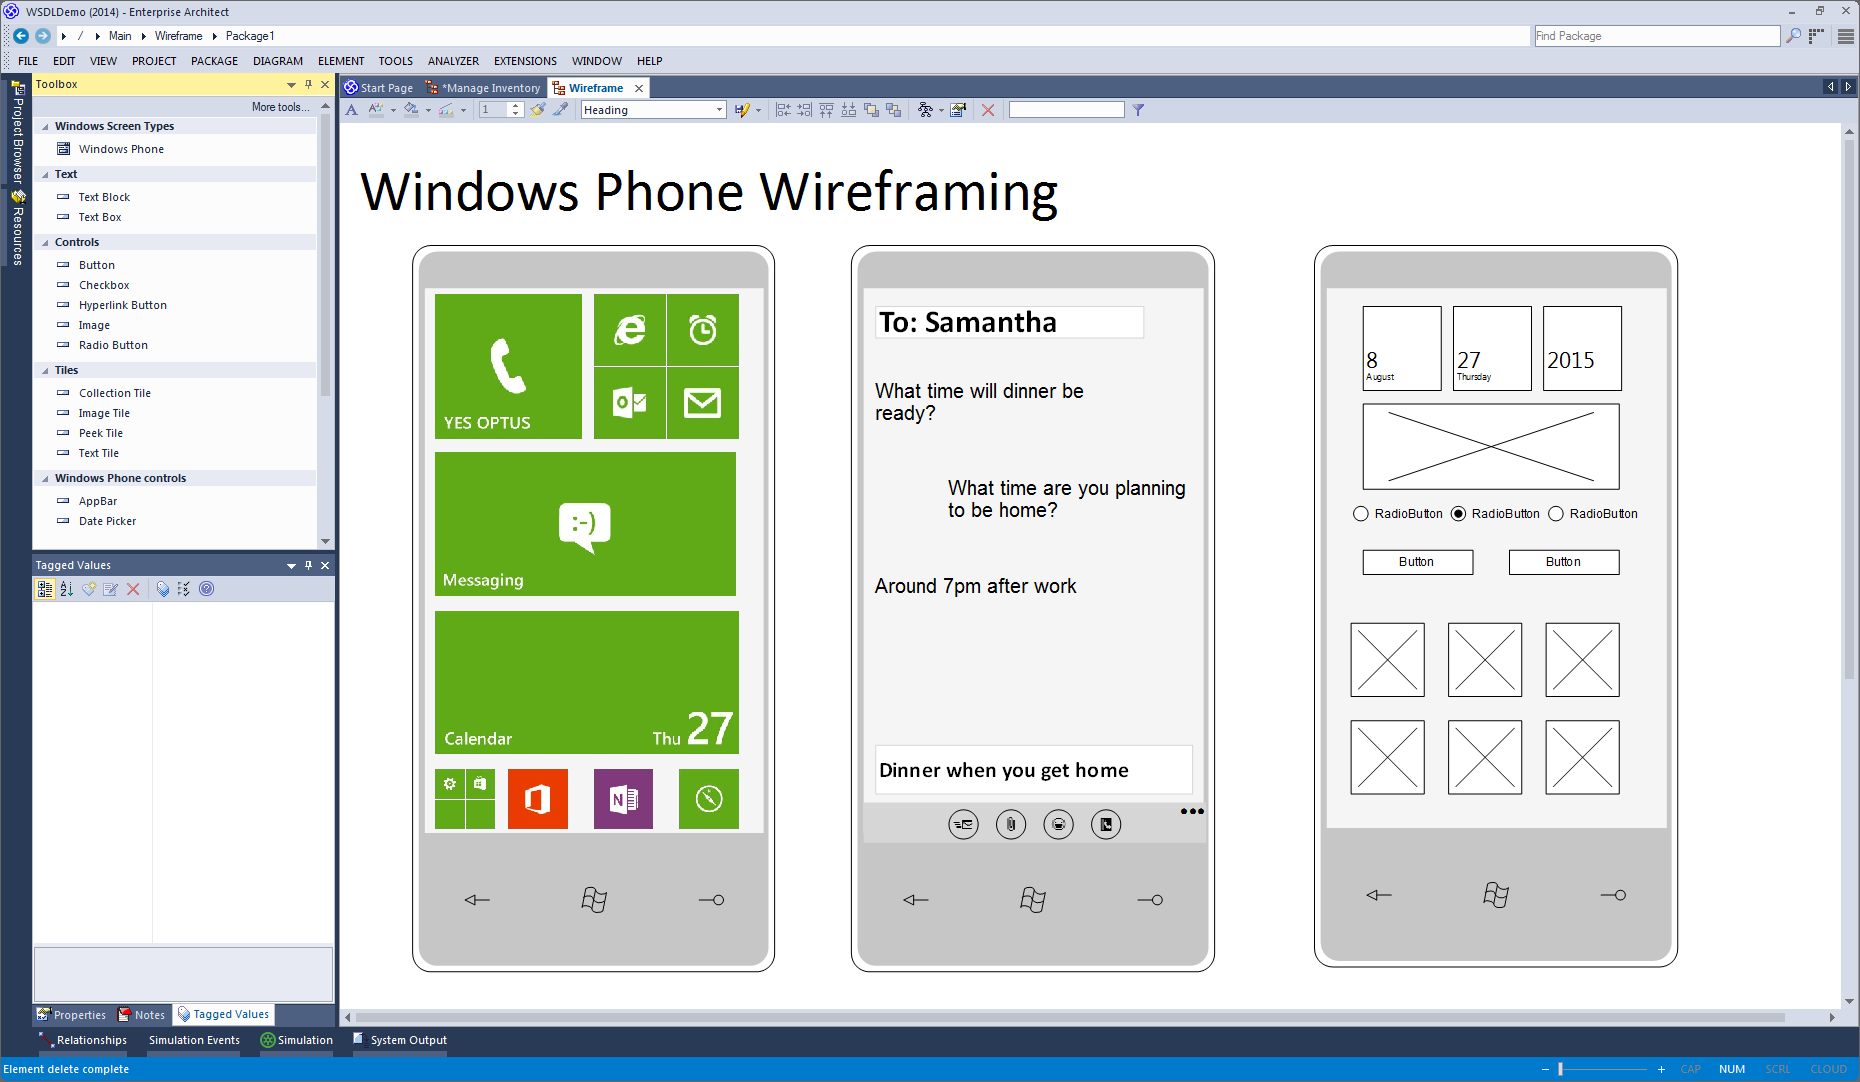 Enterprise Architect Professional Edition: Wireframing for Windows Phone